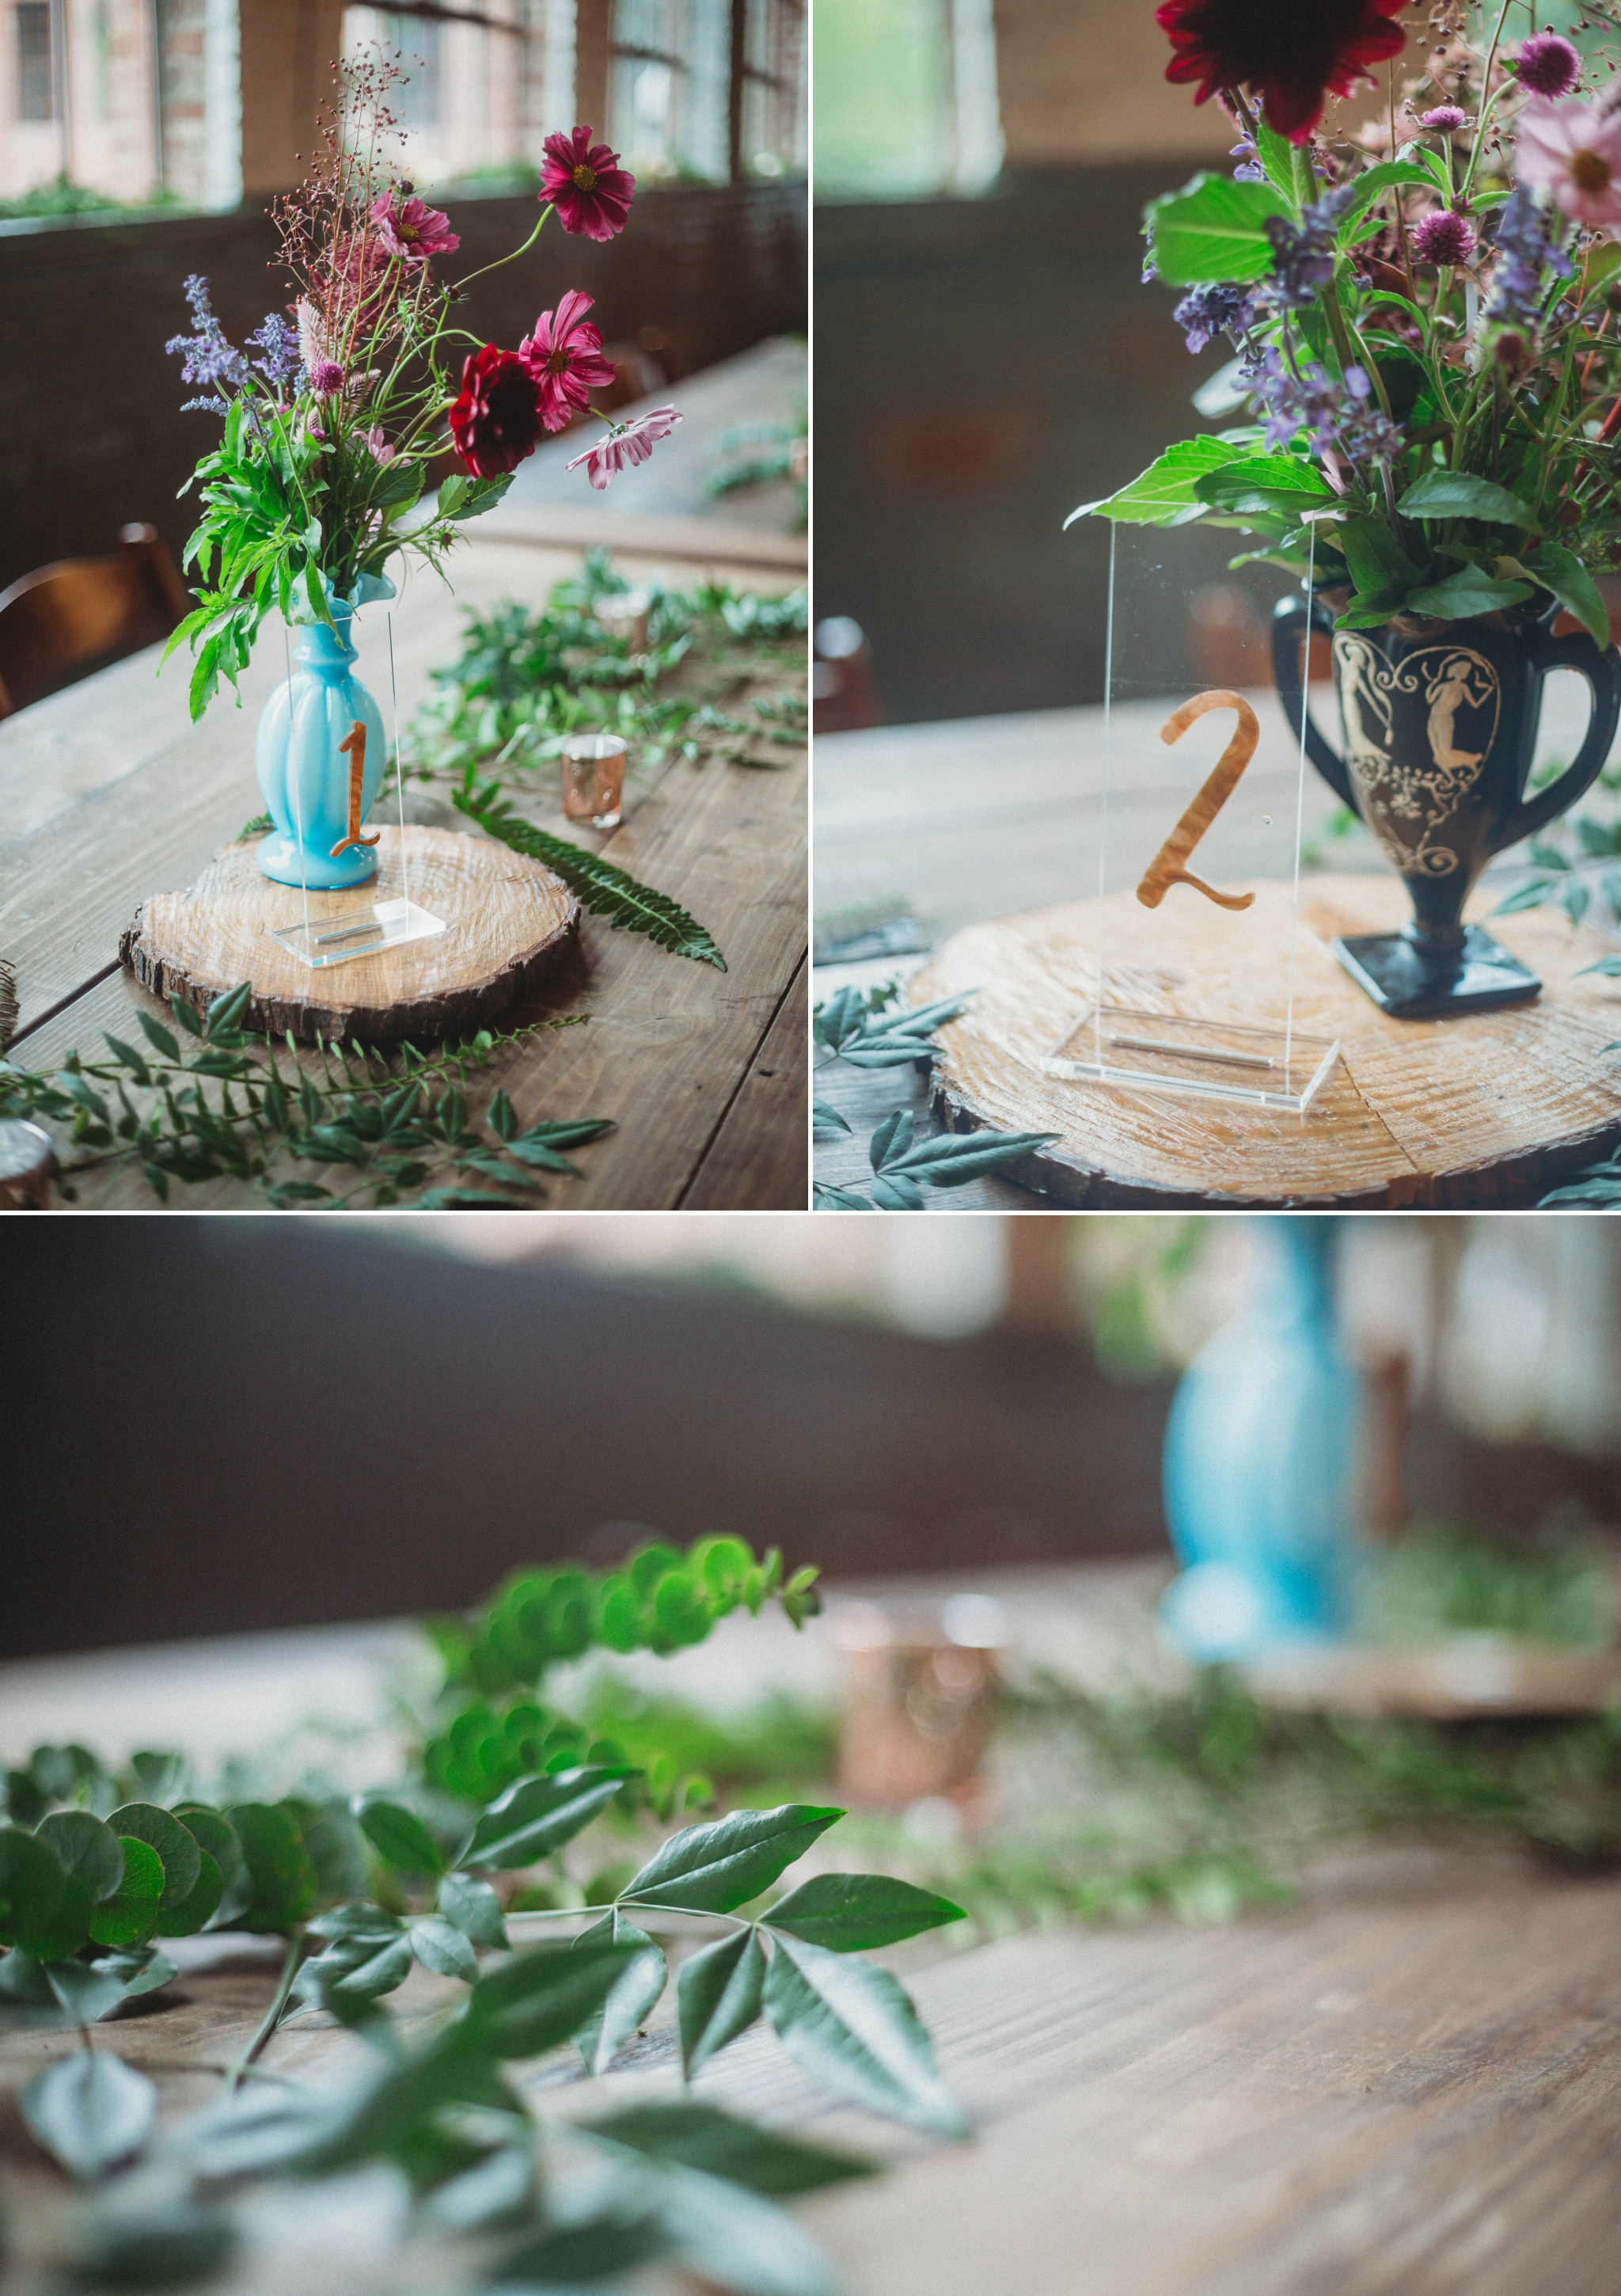 Vintage Vase Table Wedding Decorations - Brittany + Douglas - Forest Hall at Chatham Mills in Pittsboro, NC - Raleigh North Carolina Wedding Photographer